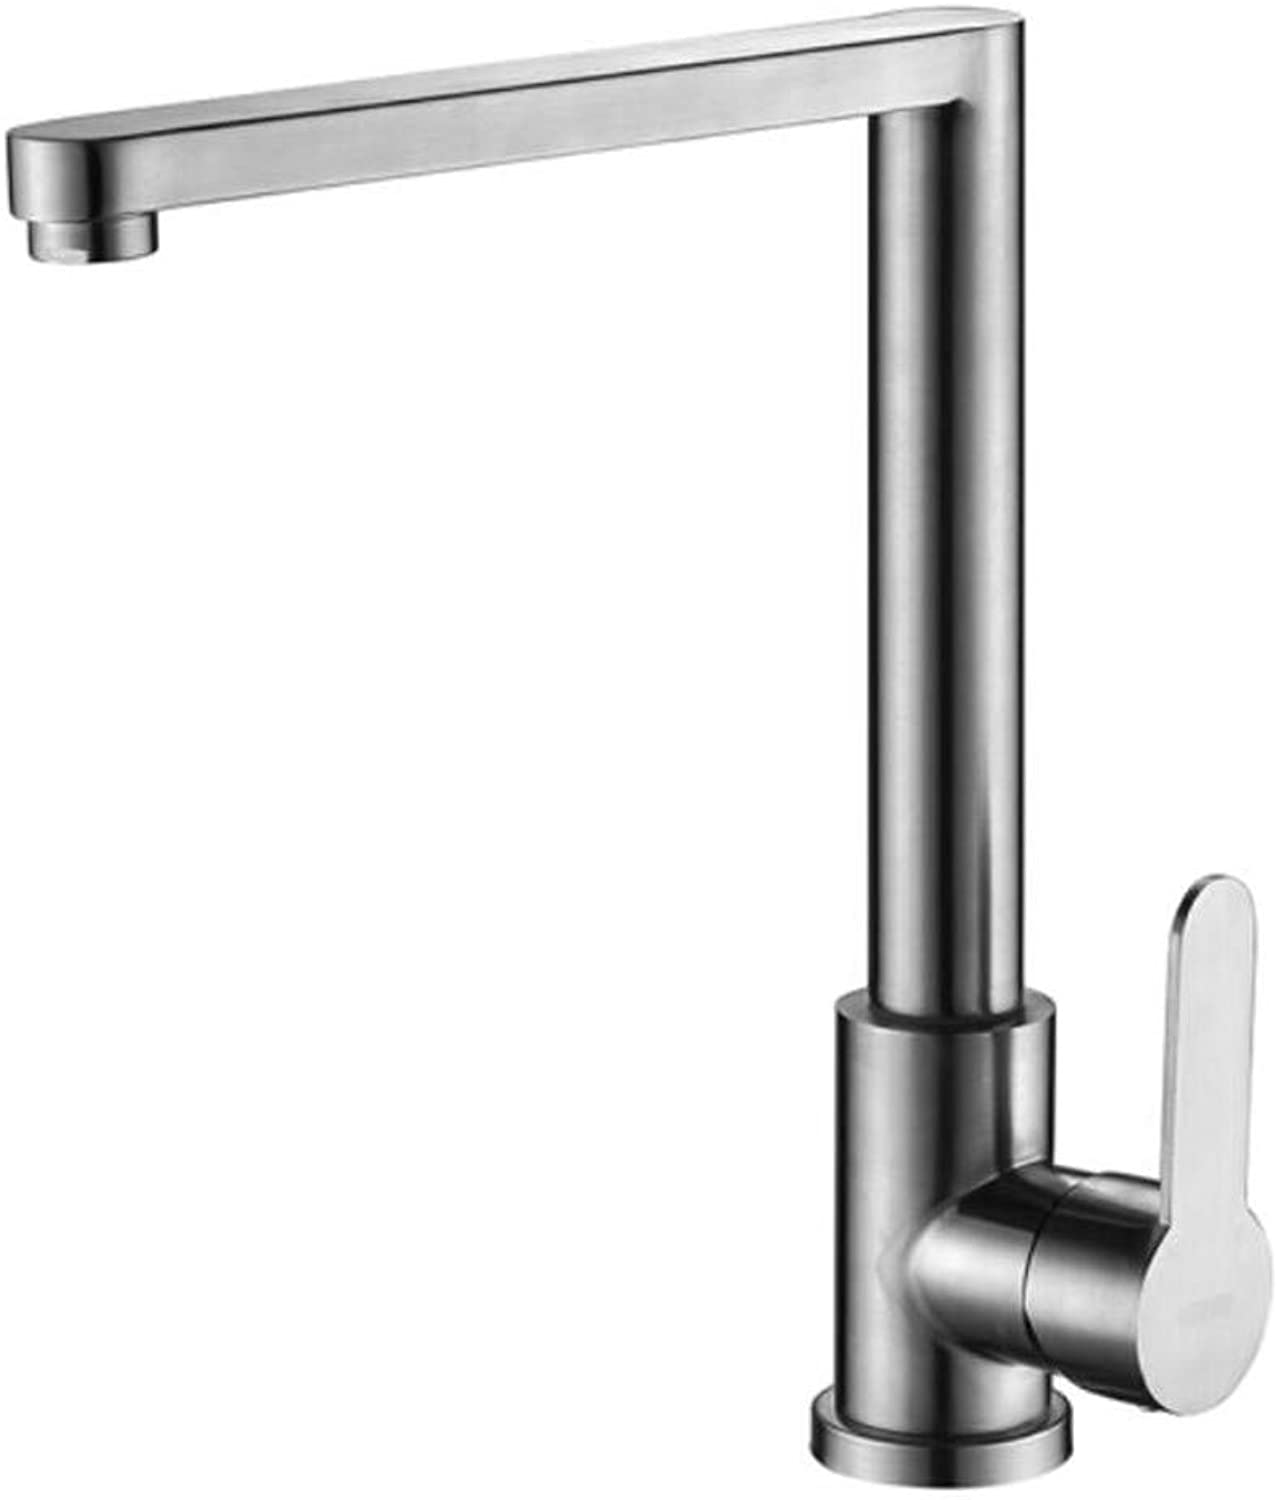 Taps Mixer?Swivel?Faucet Sink 304 Stainless Steel Kitchen Faucet